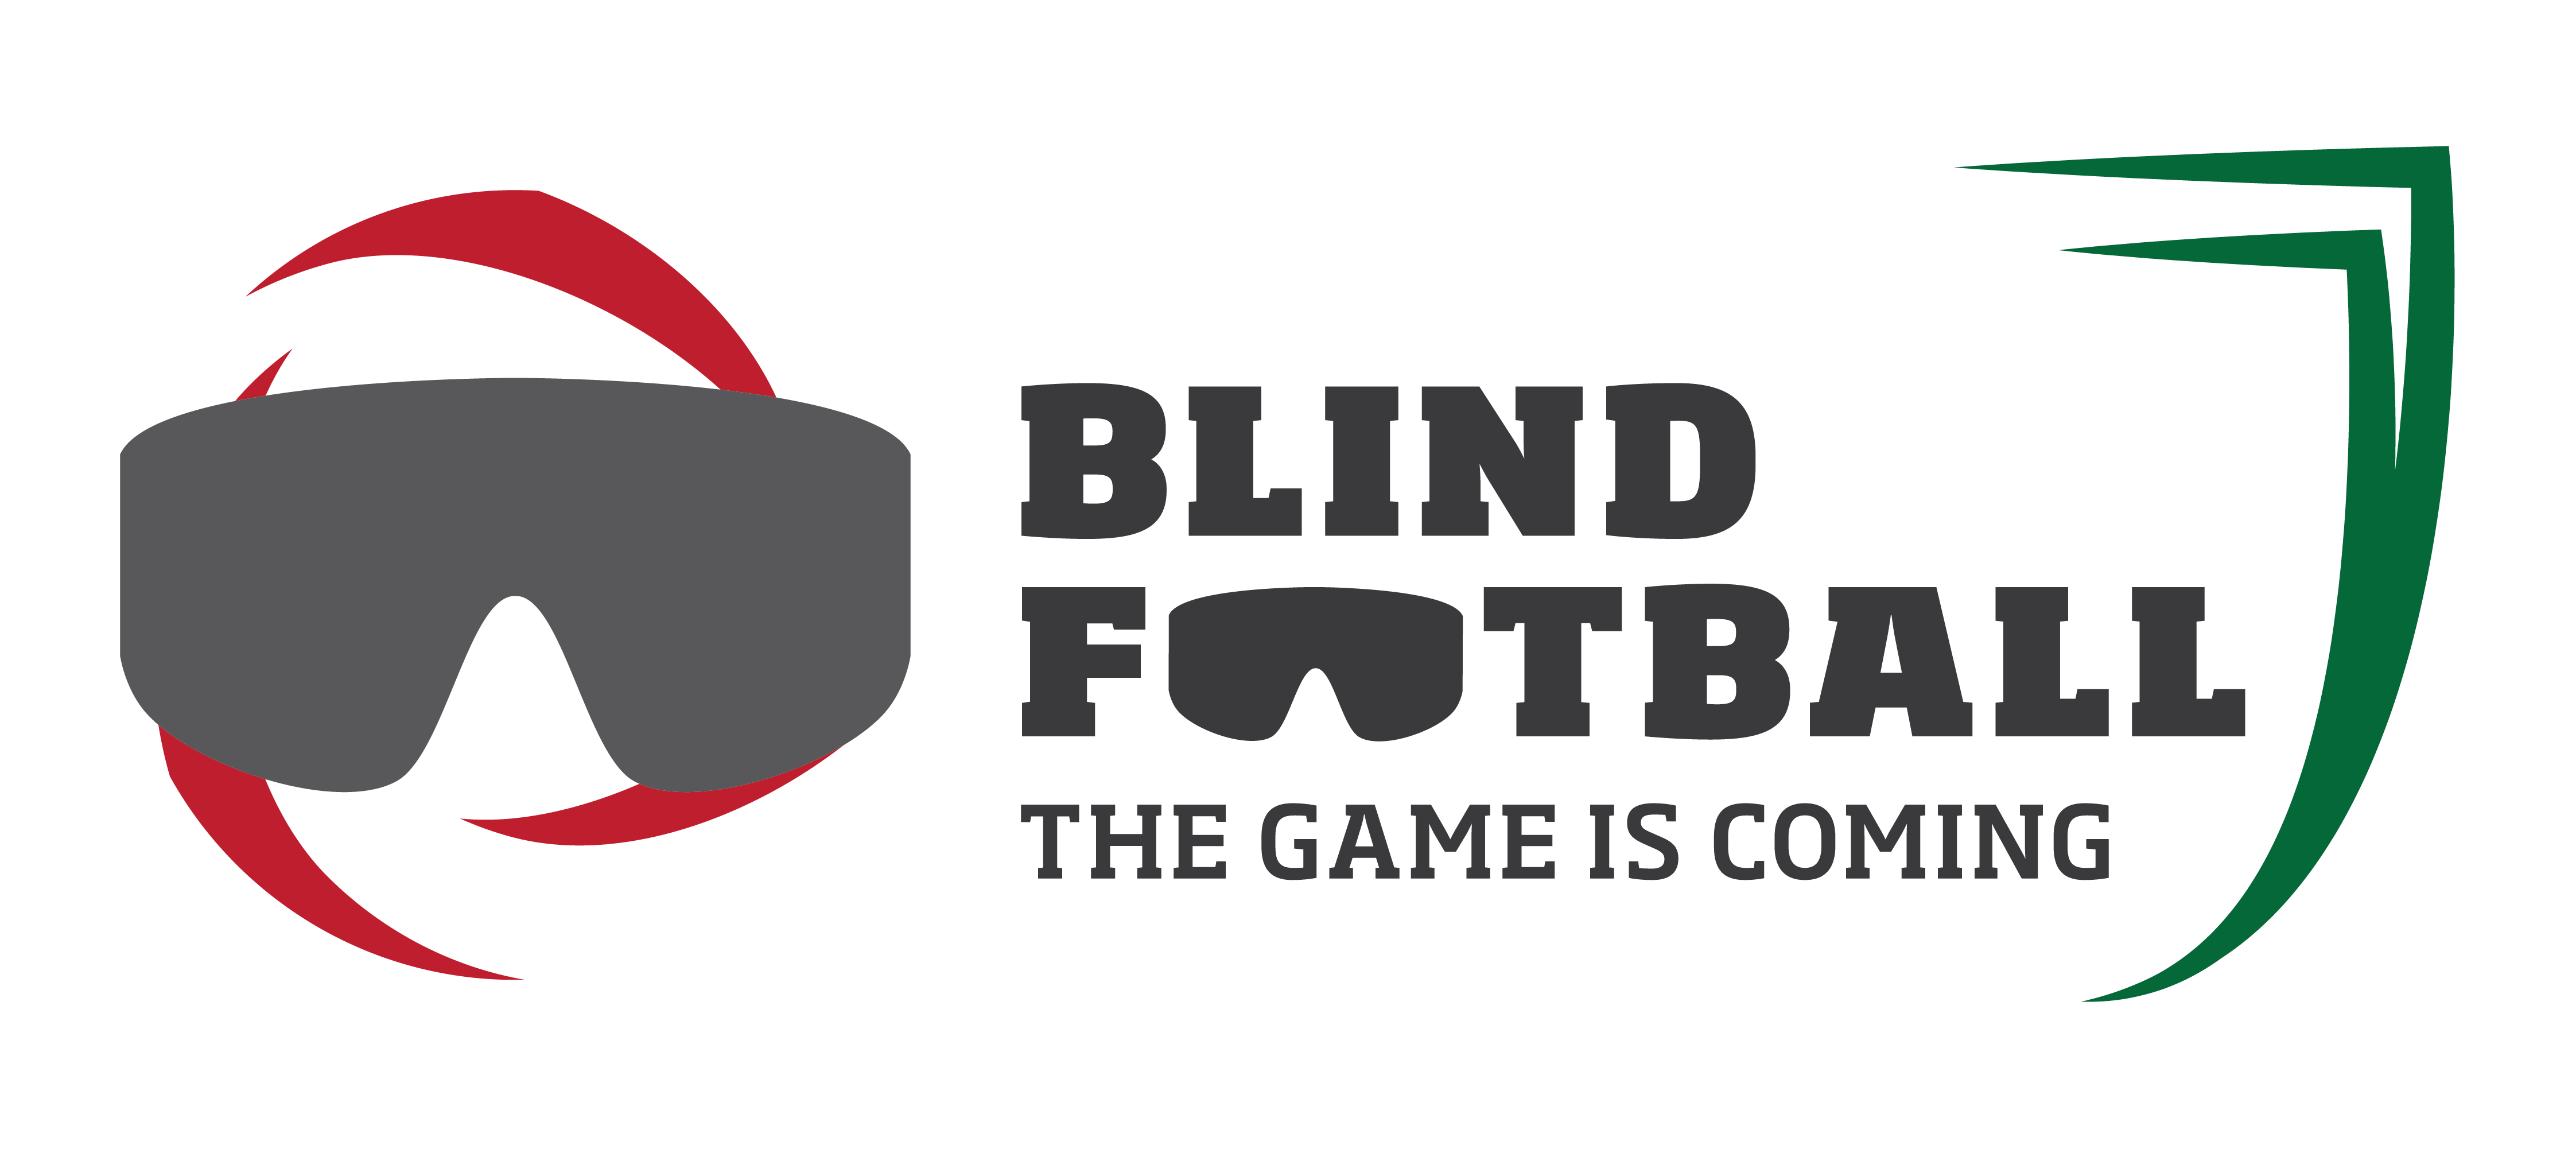 Blind Football - The Game Is Coming